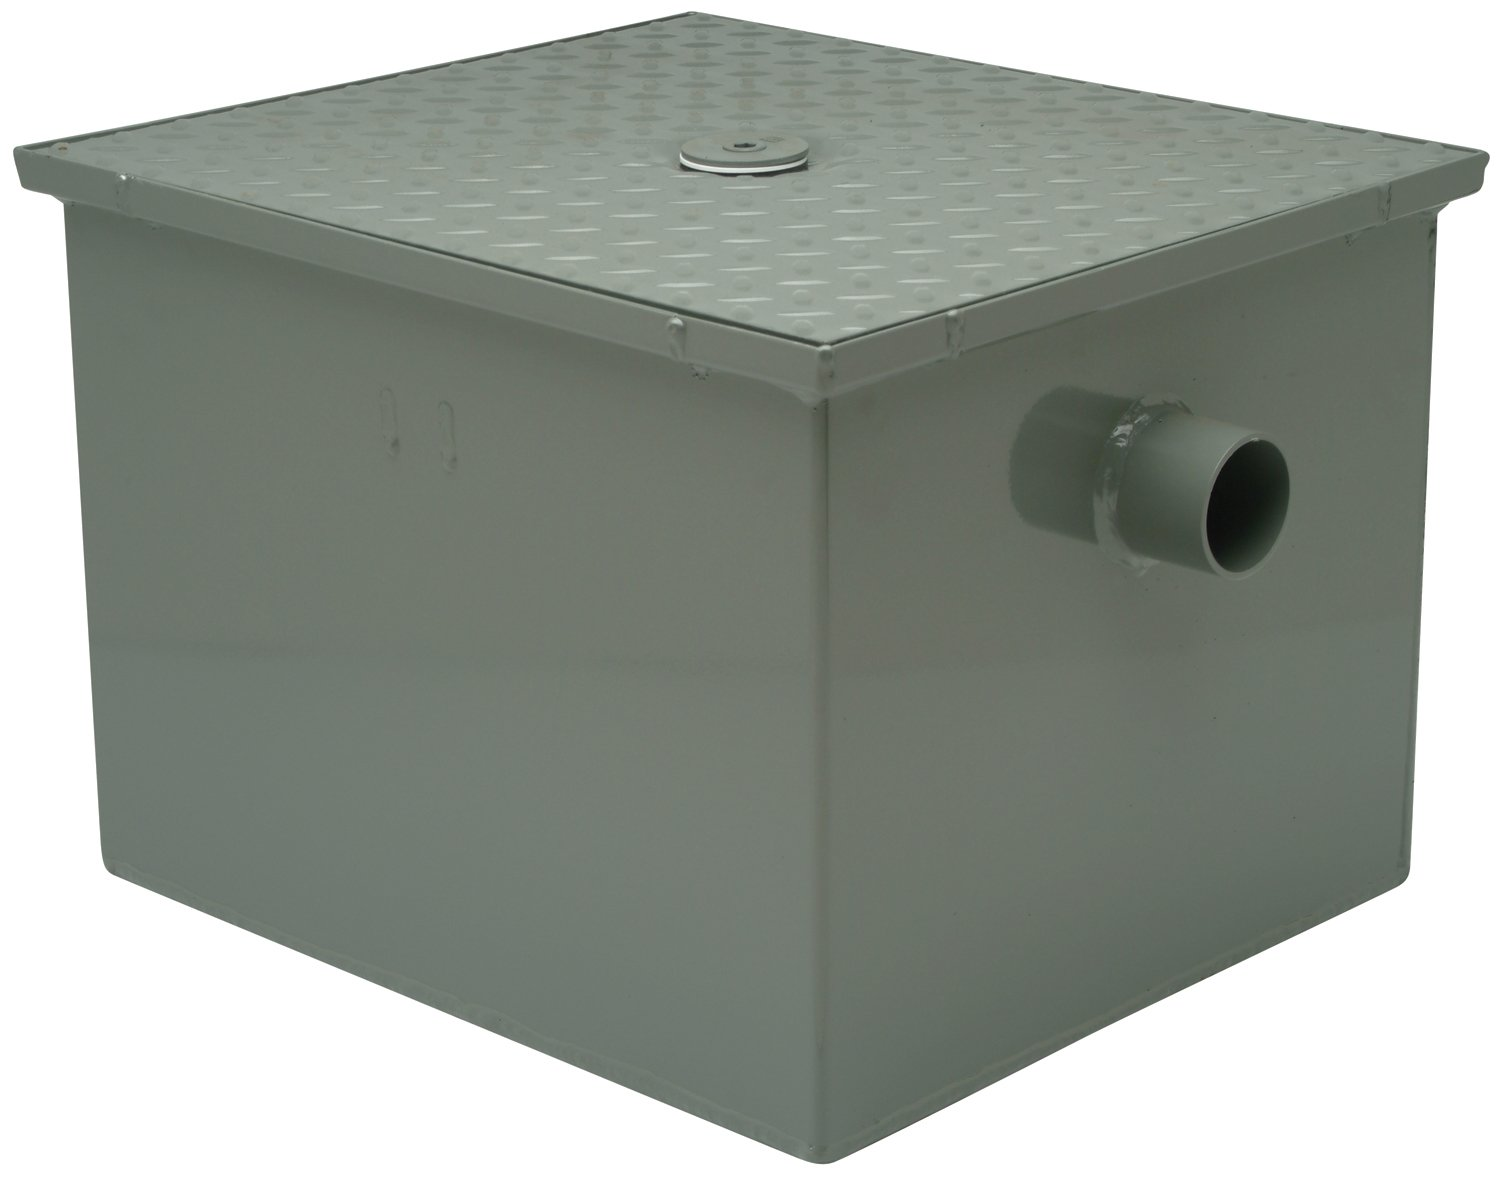 Zurn GT2700-20-2NH, Grease Trap 20 Gallons Per Minute 30 Pounds Capacity